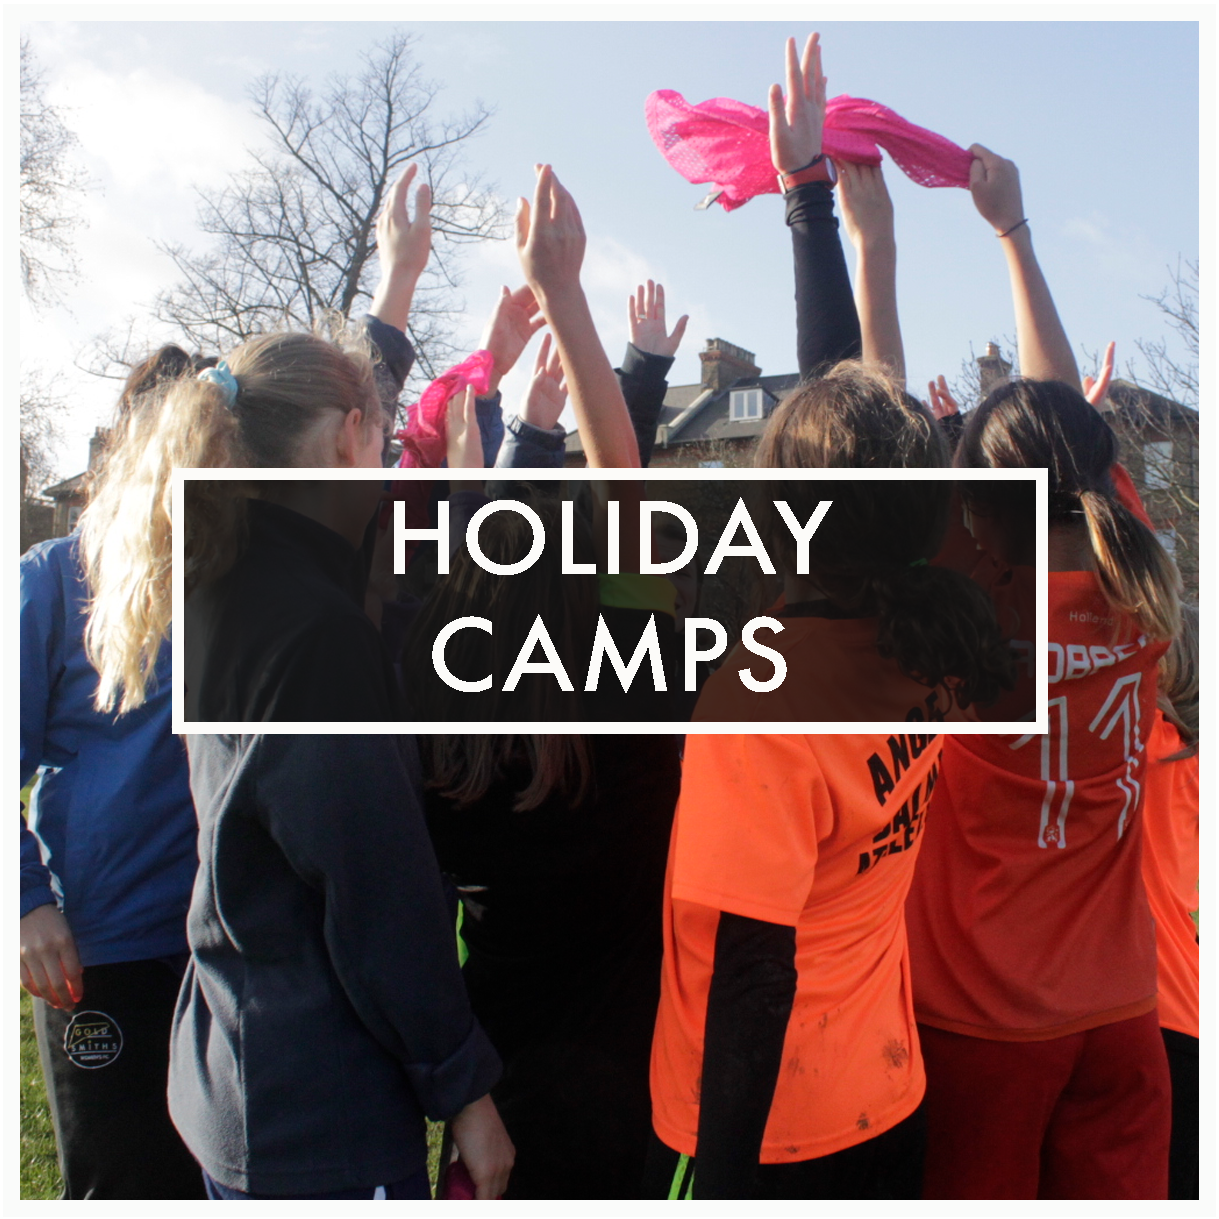 TAKE YOUR SKILLS TO THE NEXT LEVEL.   Holiday courses and camps  every School Holiday  @ Southwark or Hackney, London  Half day, full day or full course options available  Open to  all   abilities  and experience levels